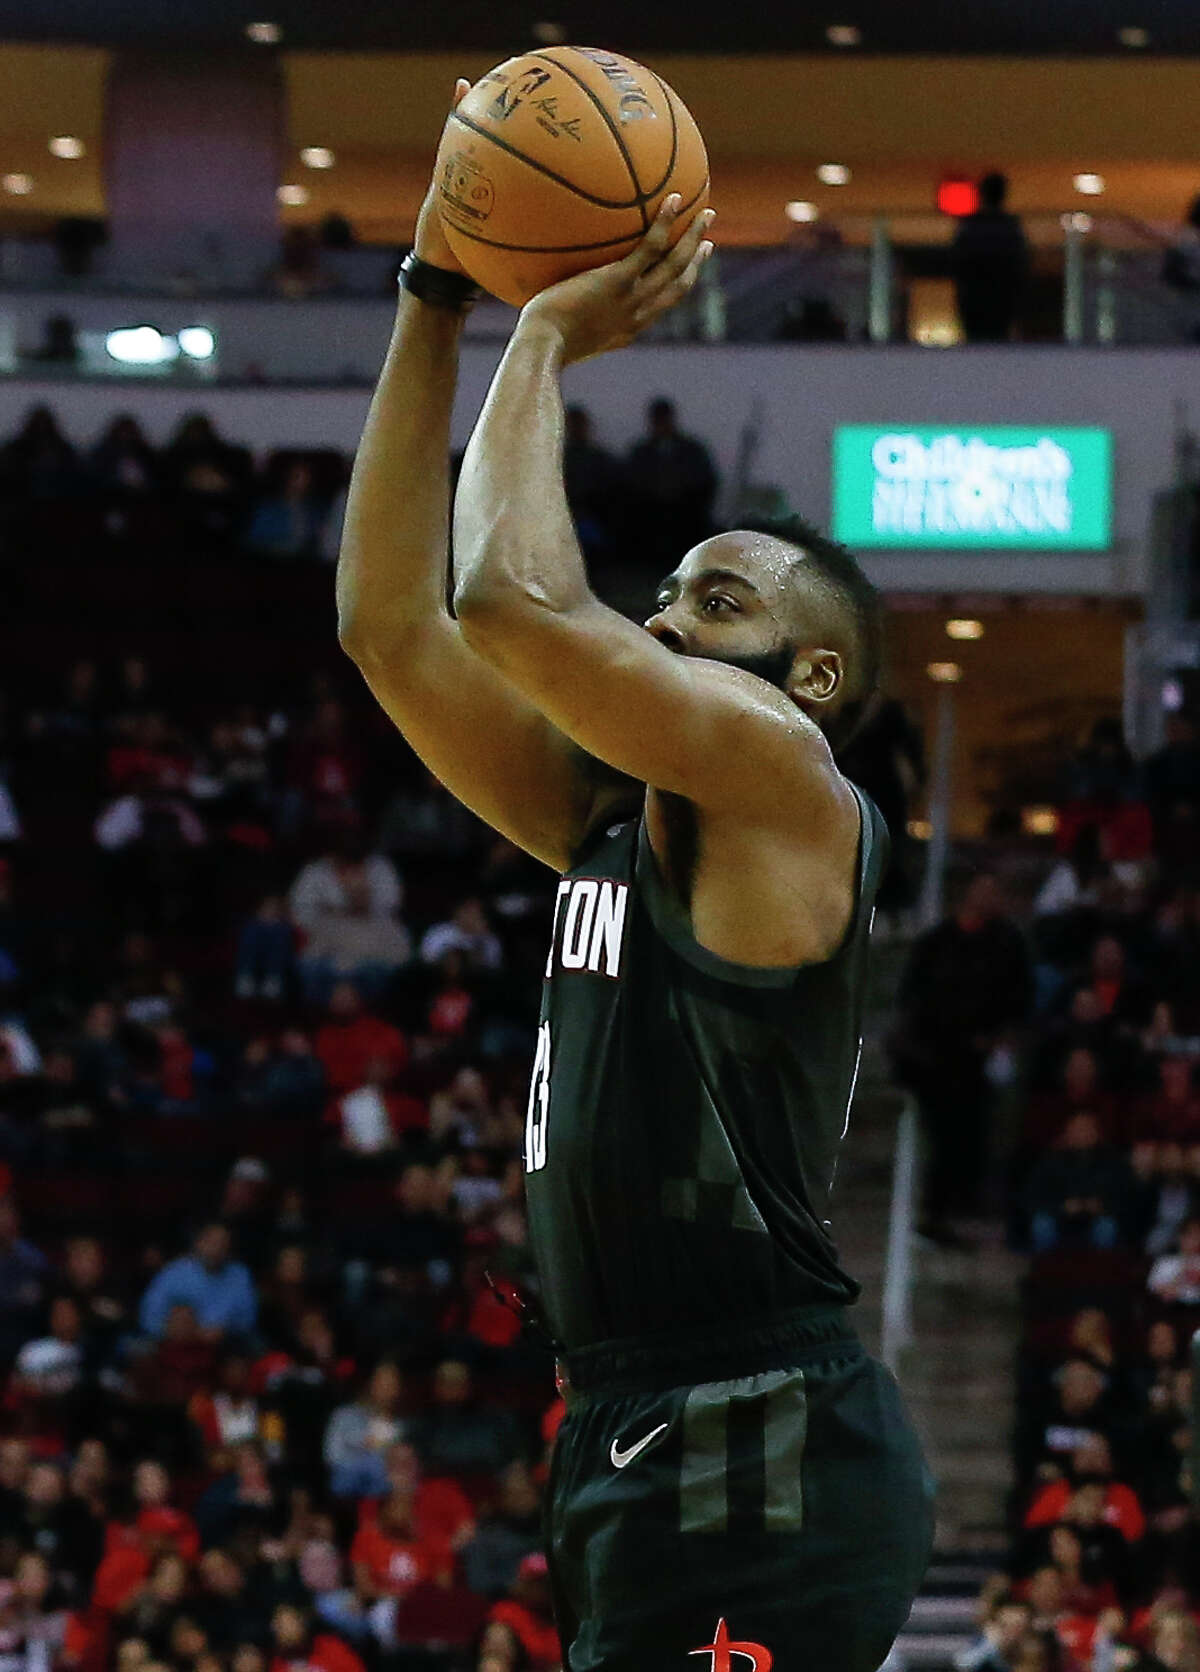 Houston Rockets guard James Harden (13) aims for the basket during the third quarter of the NBA game against the Cleveland Cavaliers at Toyota Center on Friday, Jan. 11, 2019, in Houston. The Houston Rockets defeated the Cleveland Cavaliers 141-113.